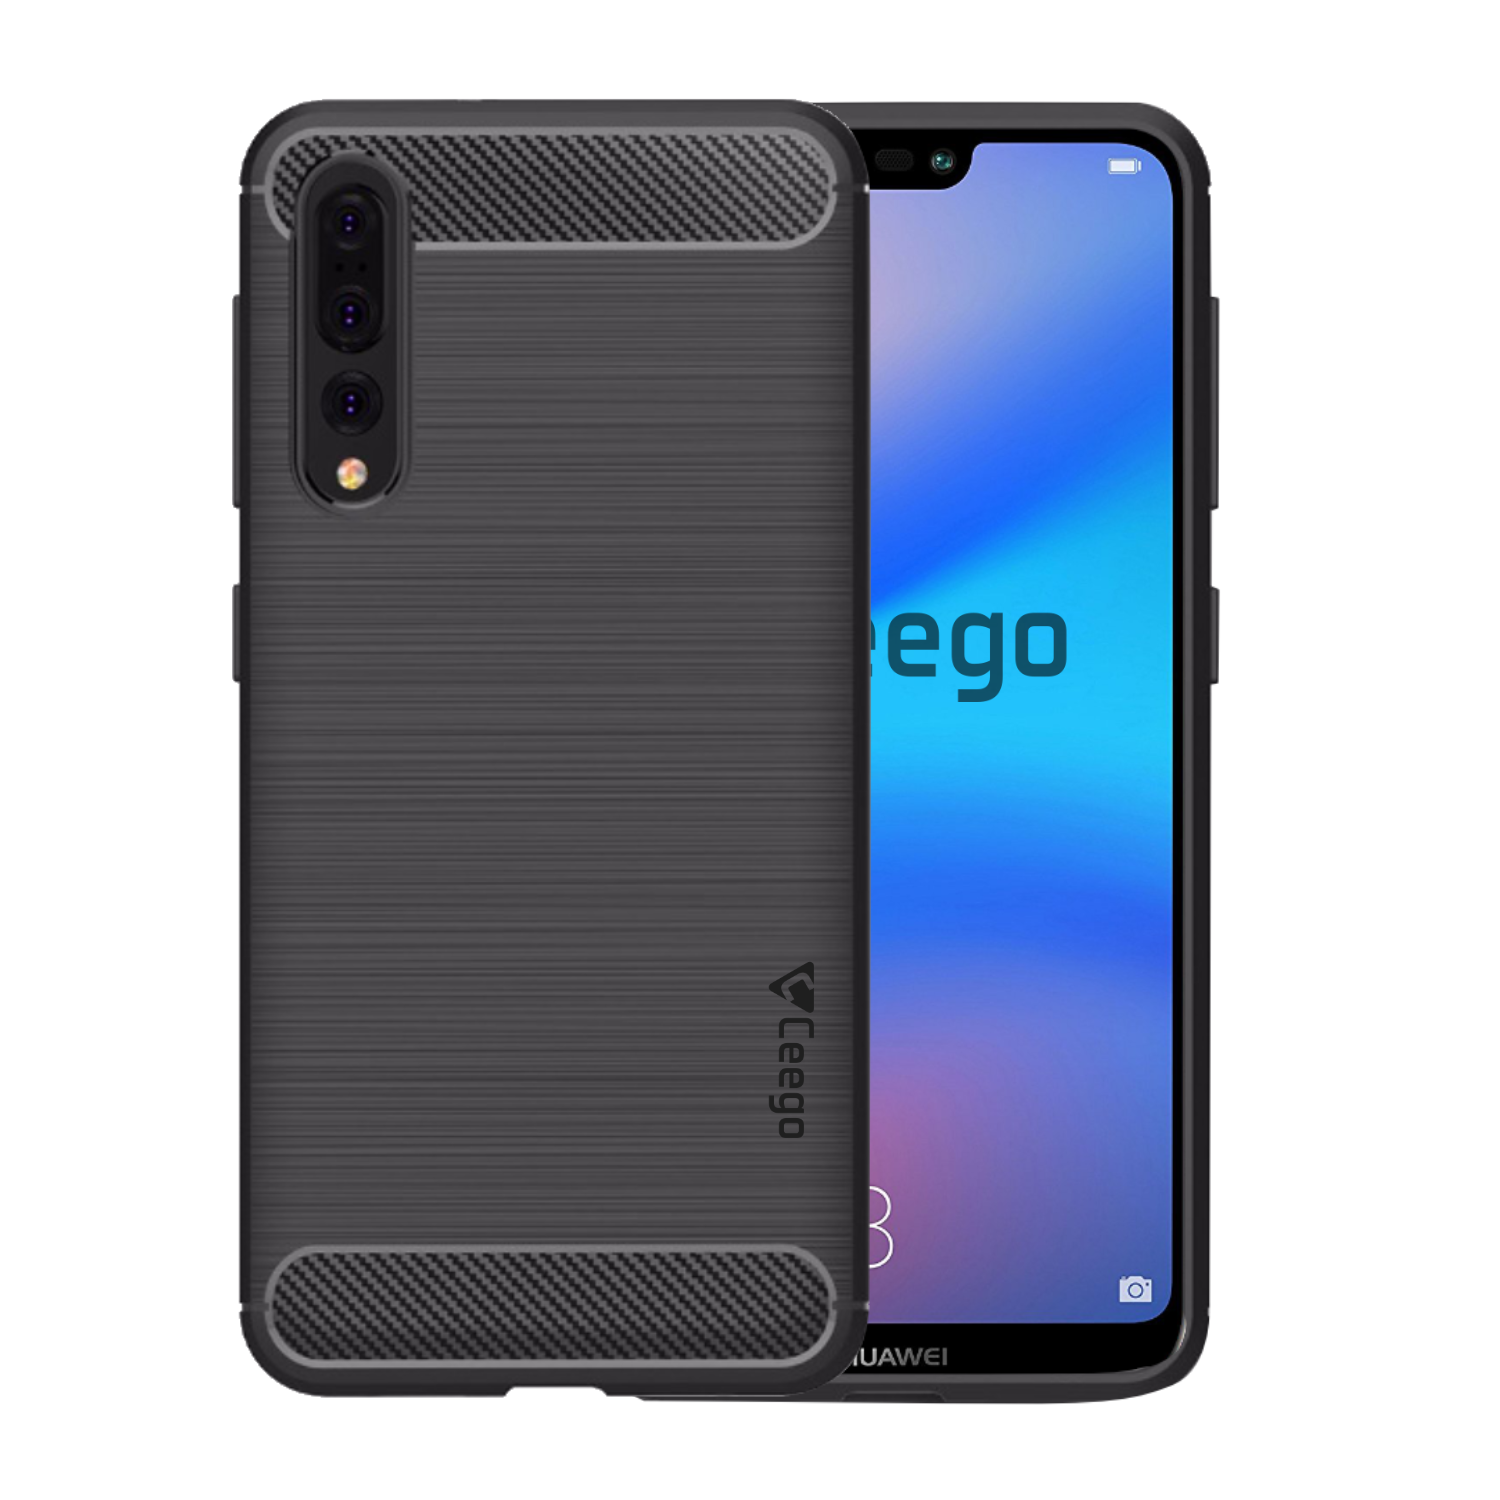 Ceego Carbon Fiber Shield Back Case for Huawei P20 Pro  – Matte Black